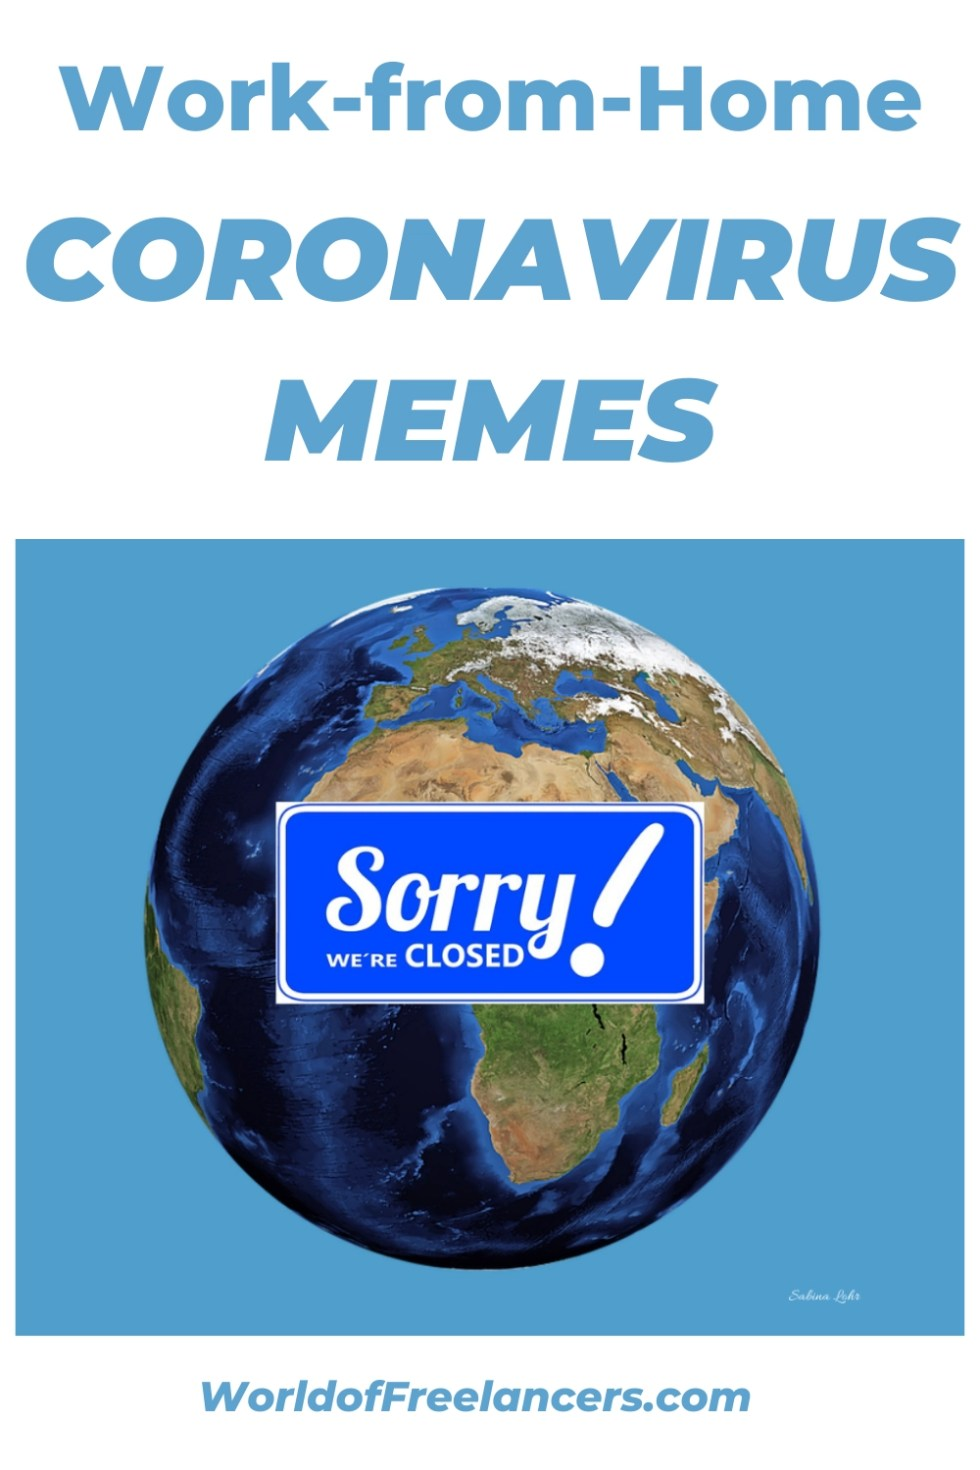 Work-from-Home coronavirus memes